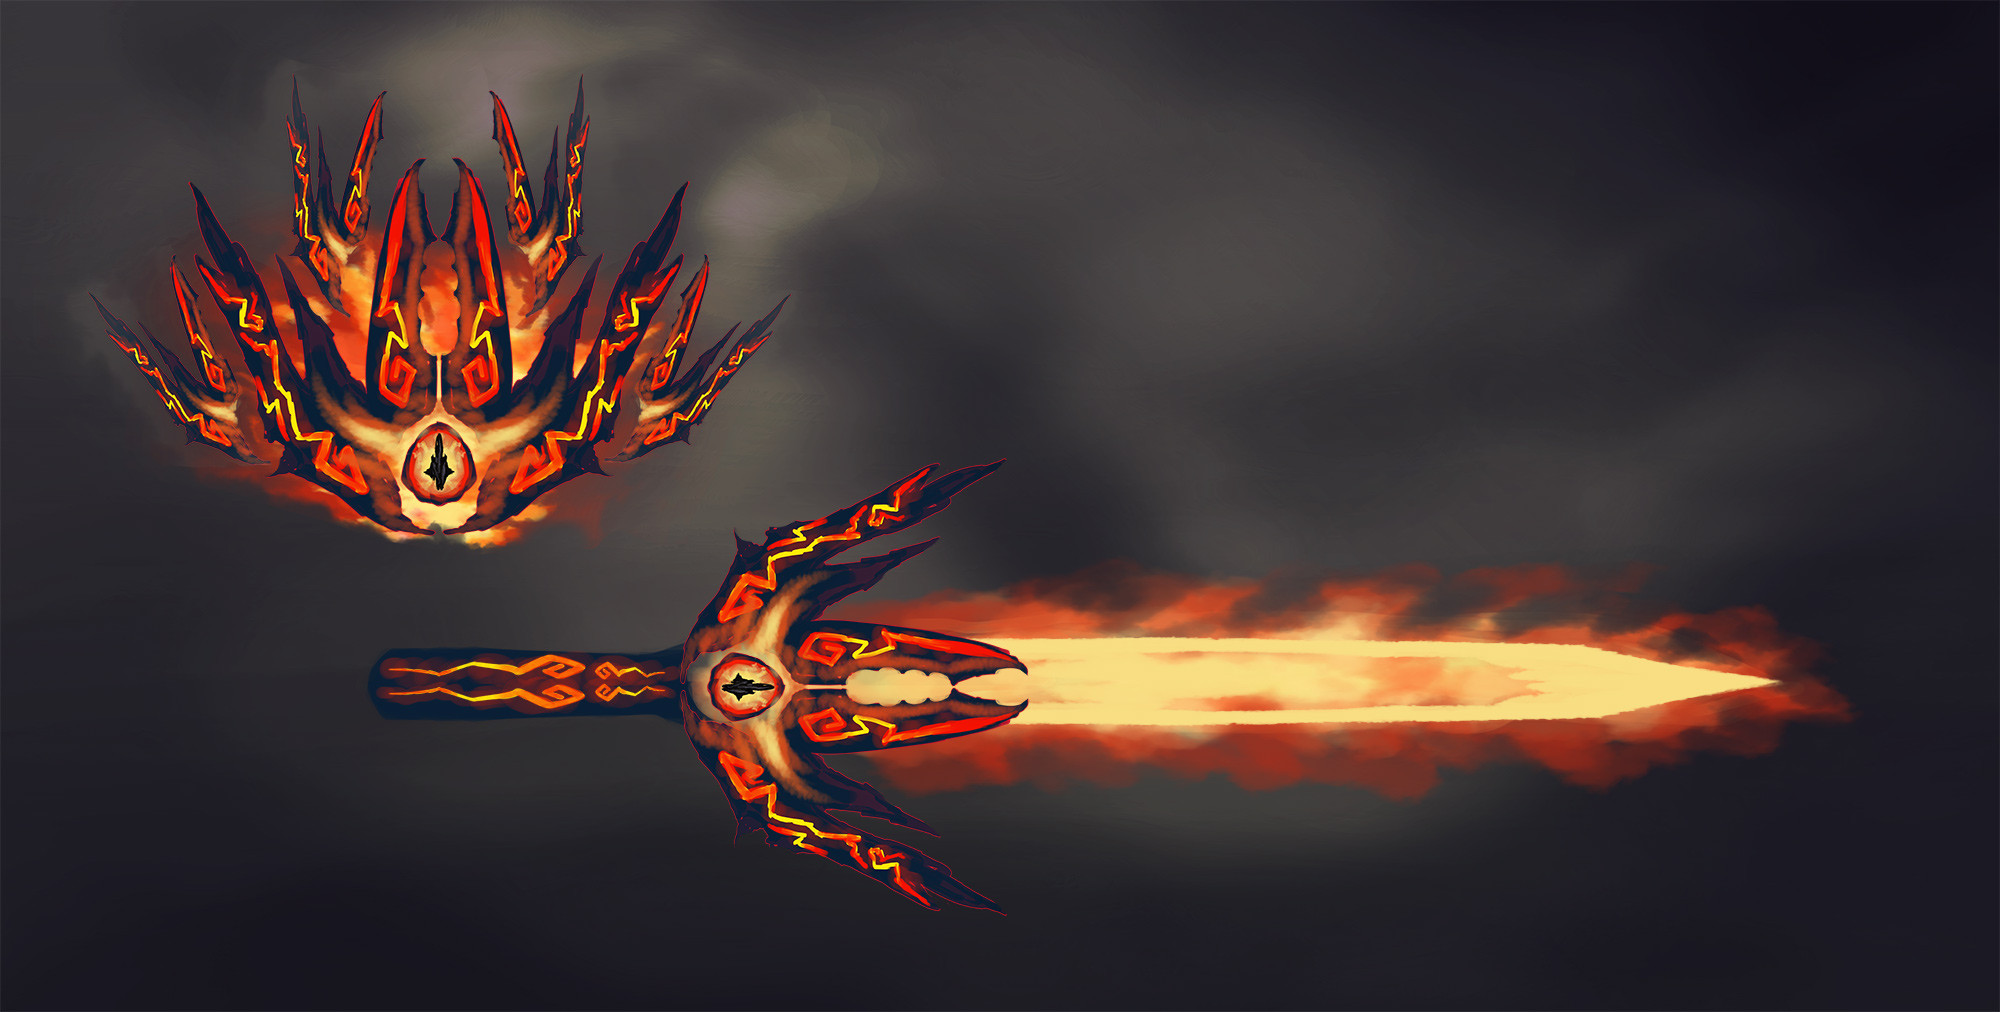 Initial sketch for the fire great shield / sword